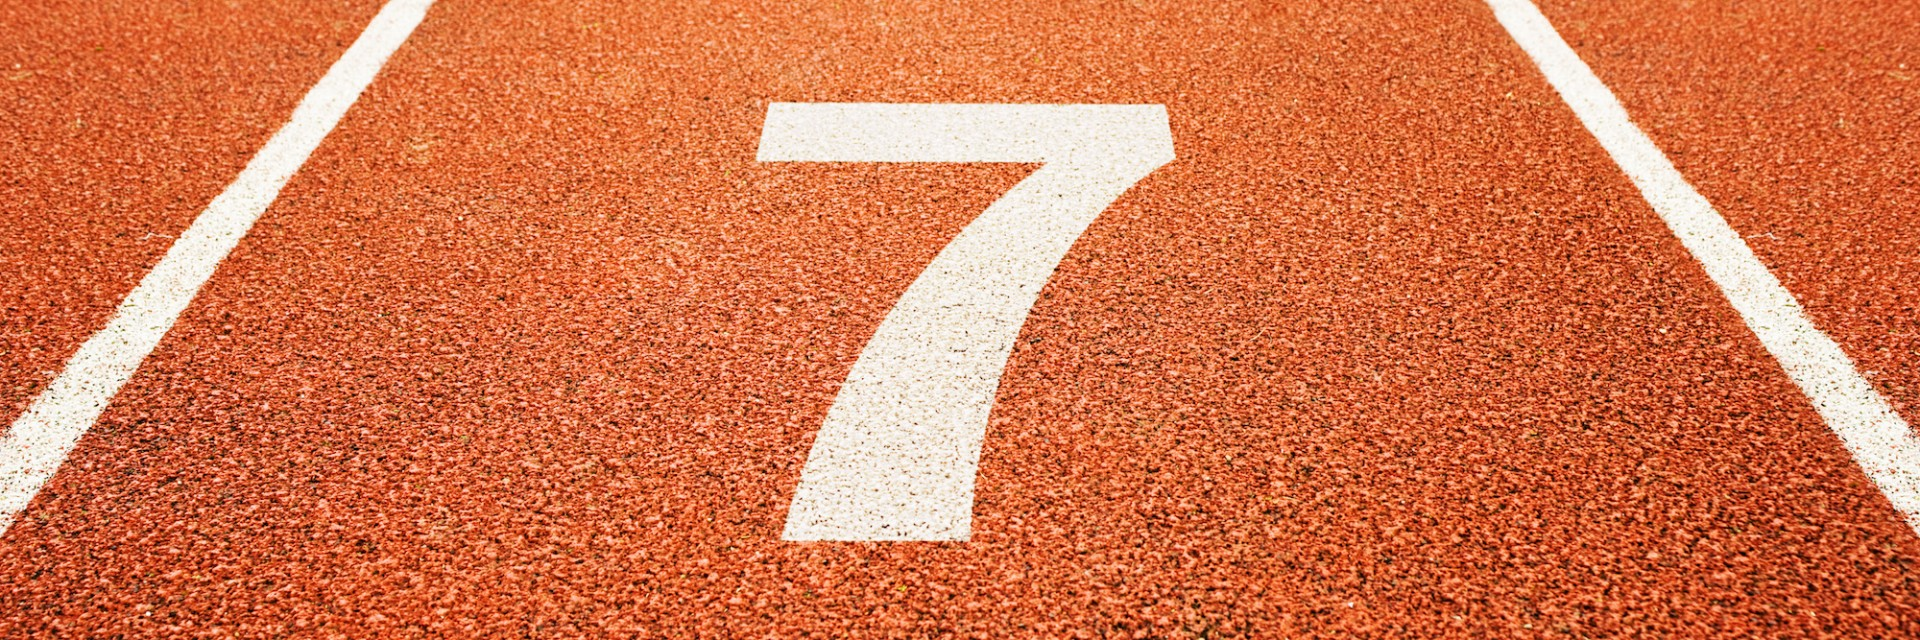 The number 7 on an athletic track